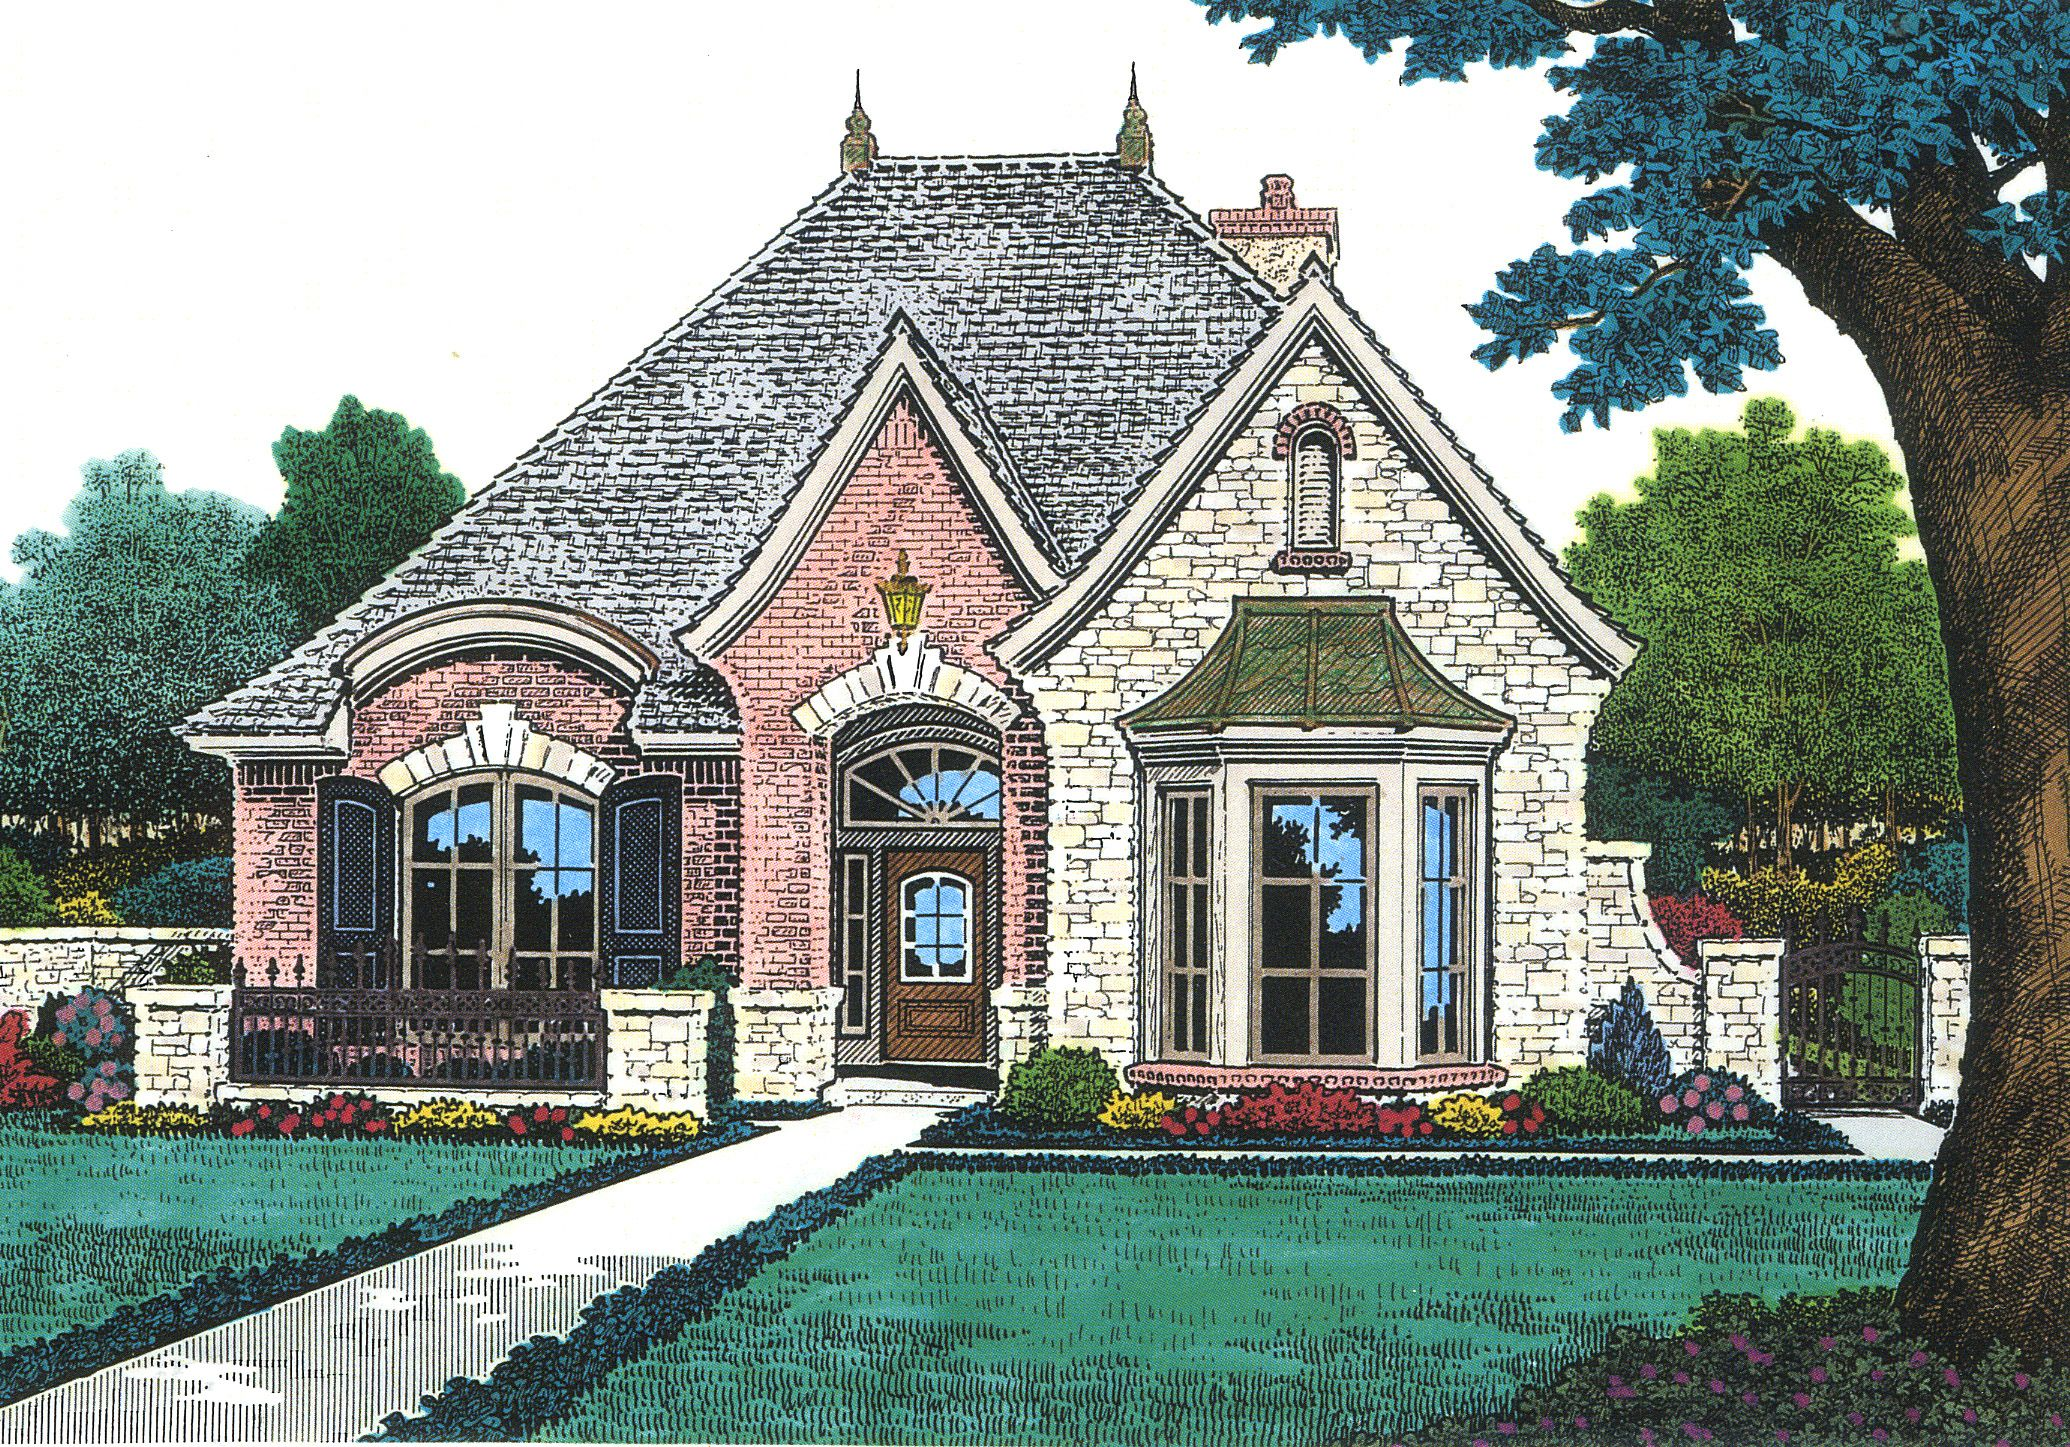 eplans house plan this enchanting stone cottage is a beautiful eplans house plan this enchanting stone cottage is a beautiful example of french country living inside a dining room and study guest suite flan